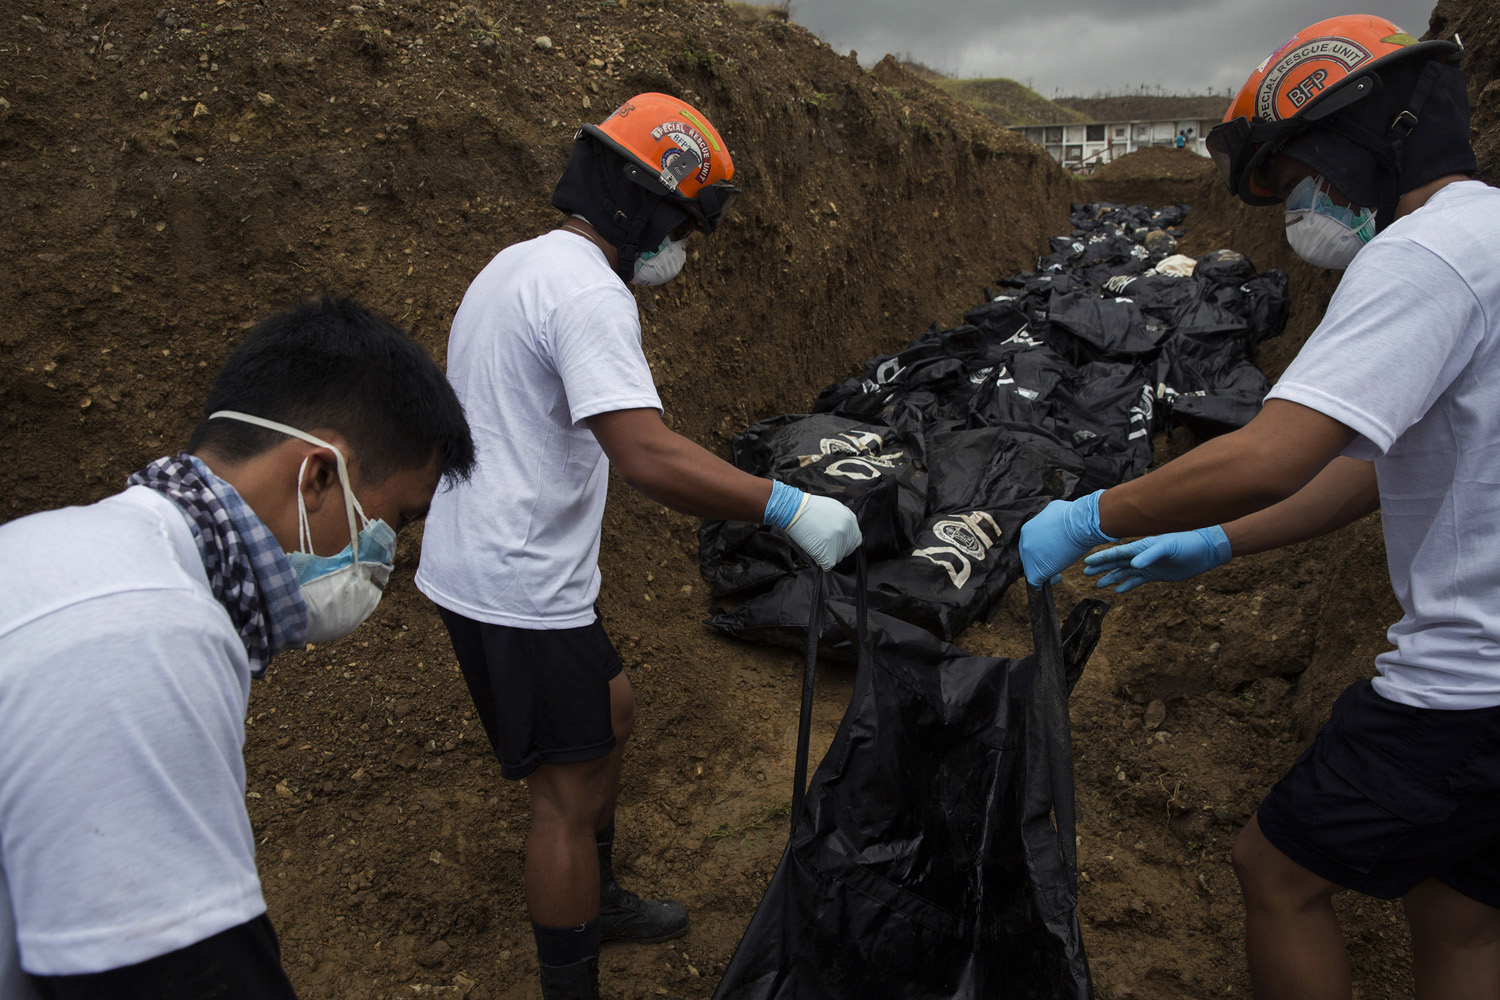 Rescue workers load body bags of people killed by Haiyan into a mass grave in Tacloban, Nov. 16, 2013.